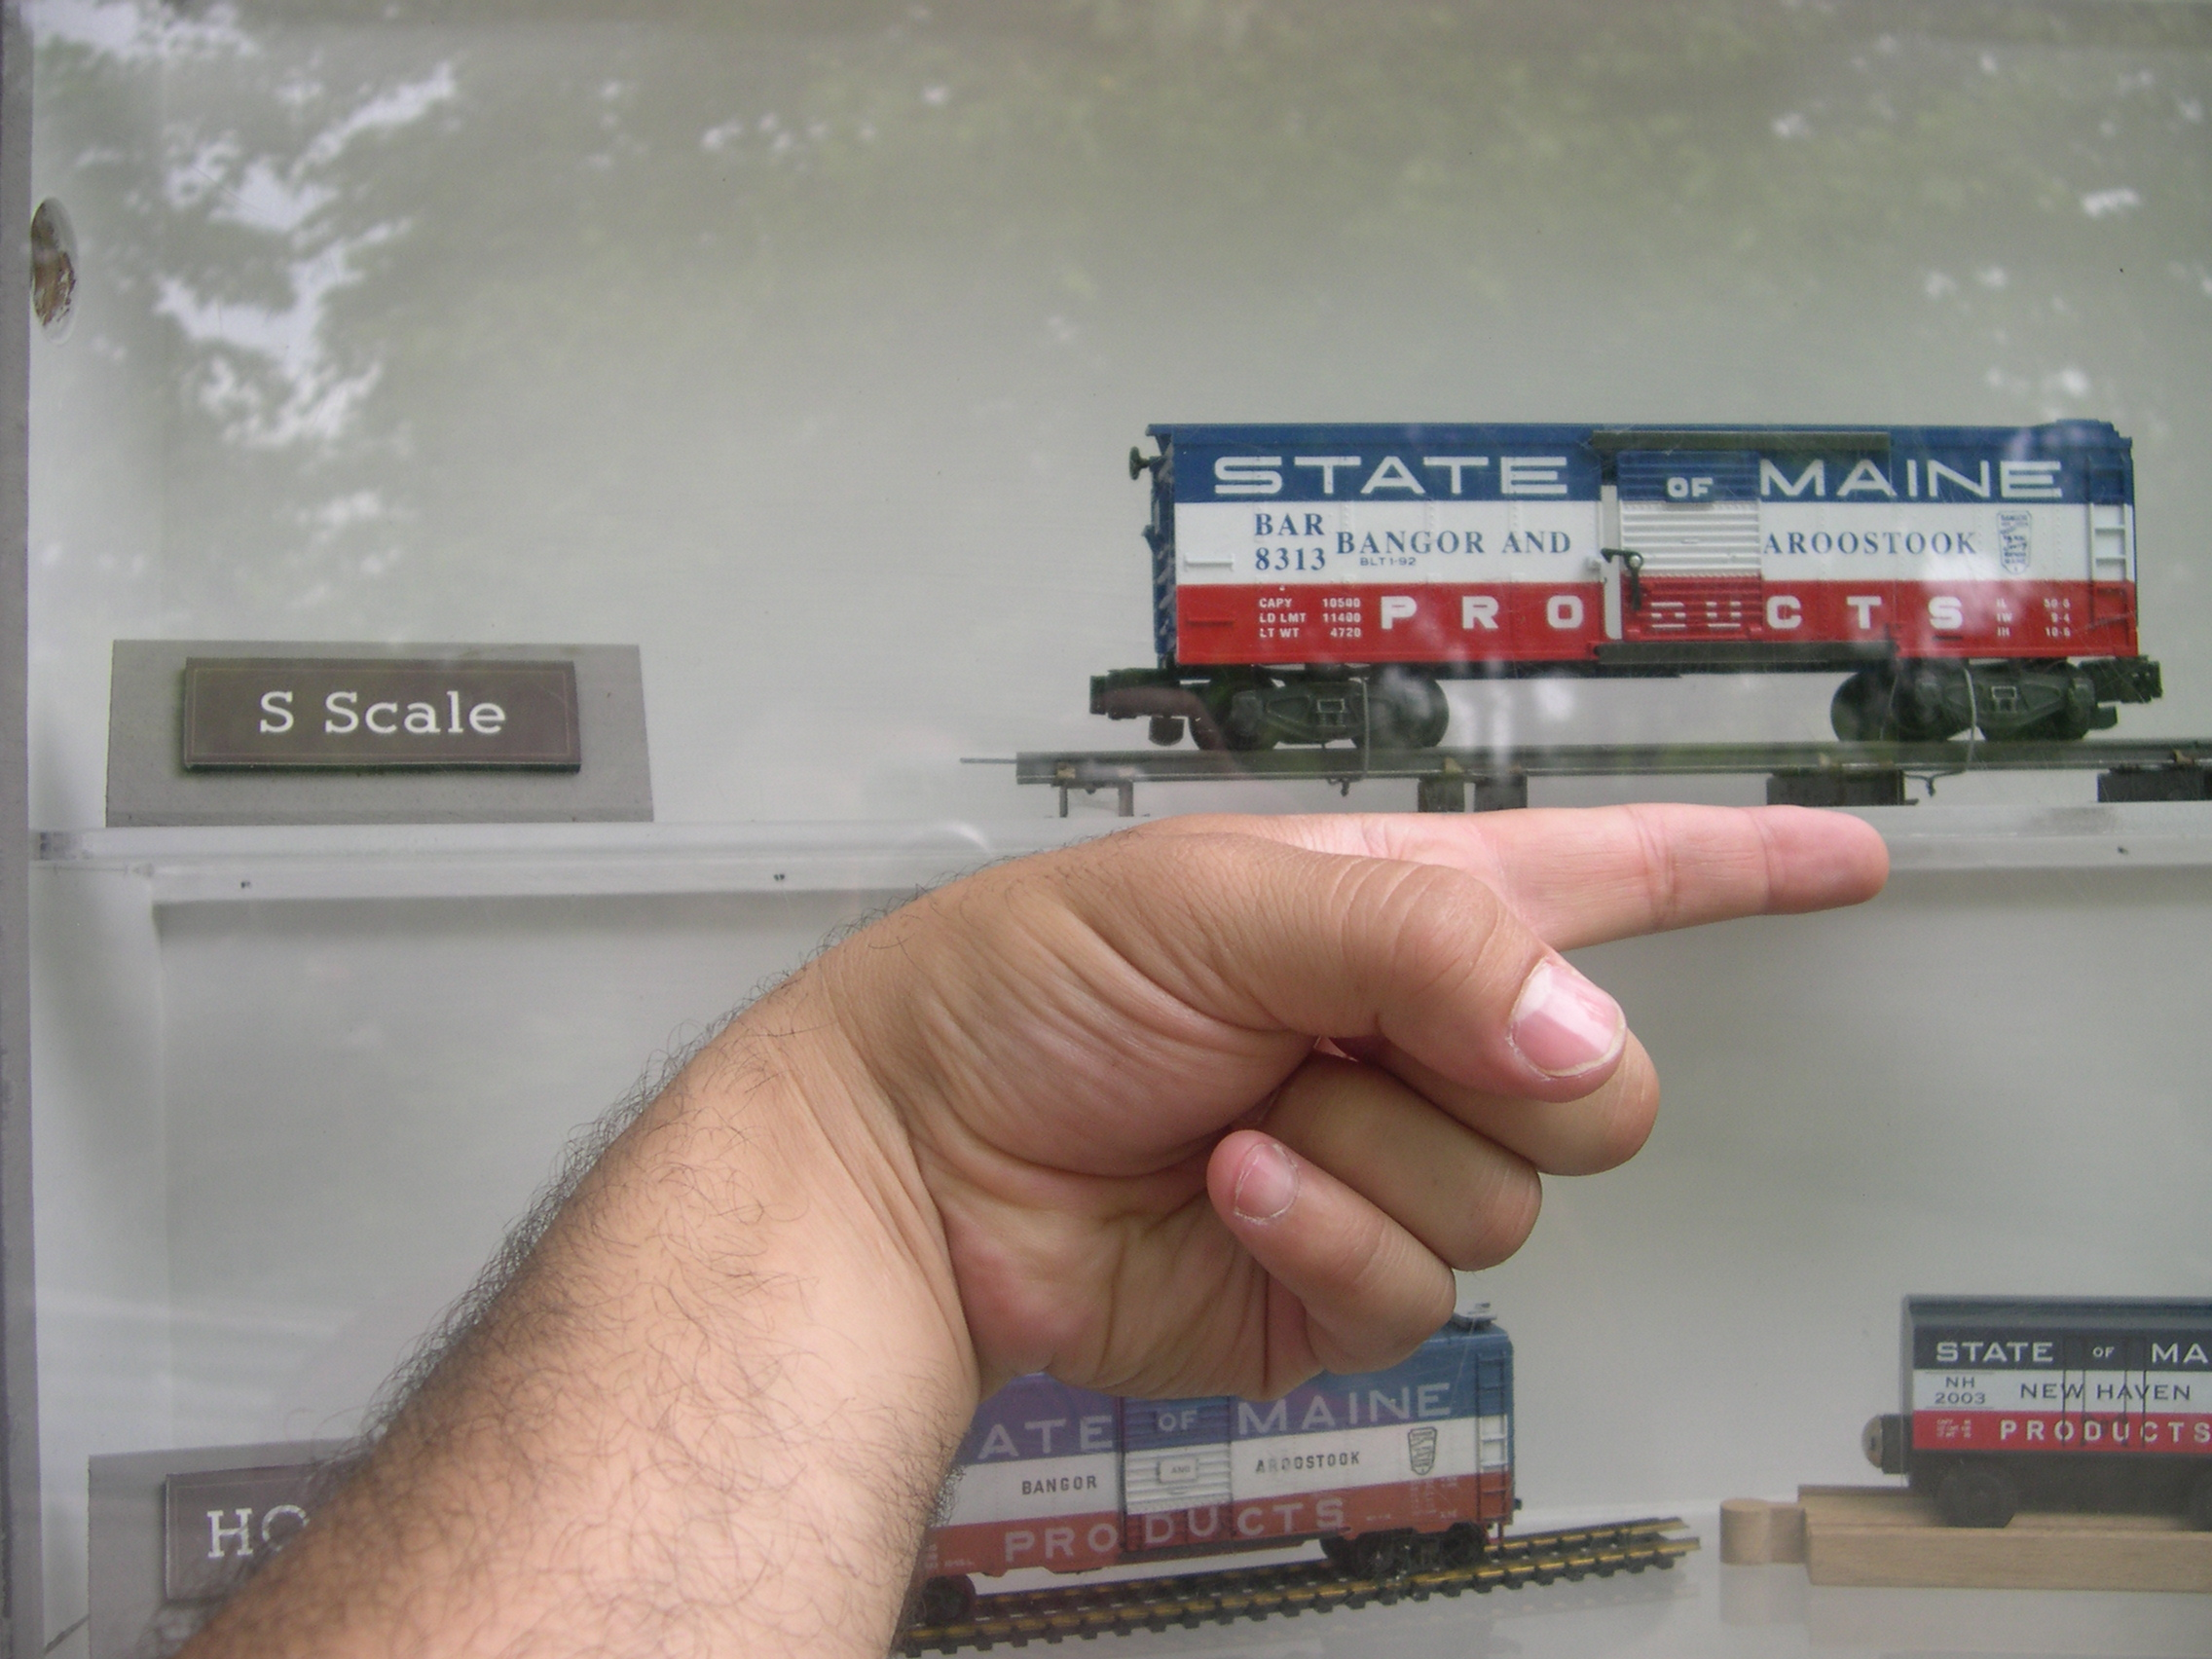 S scale model train decals